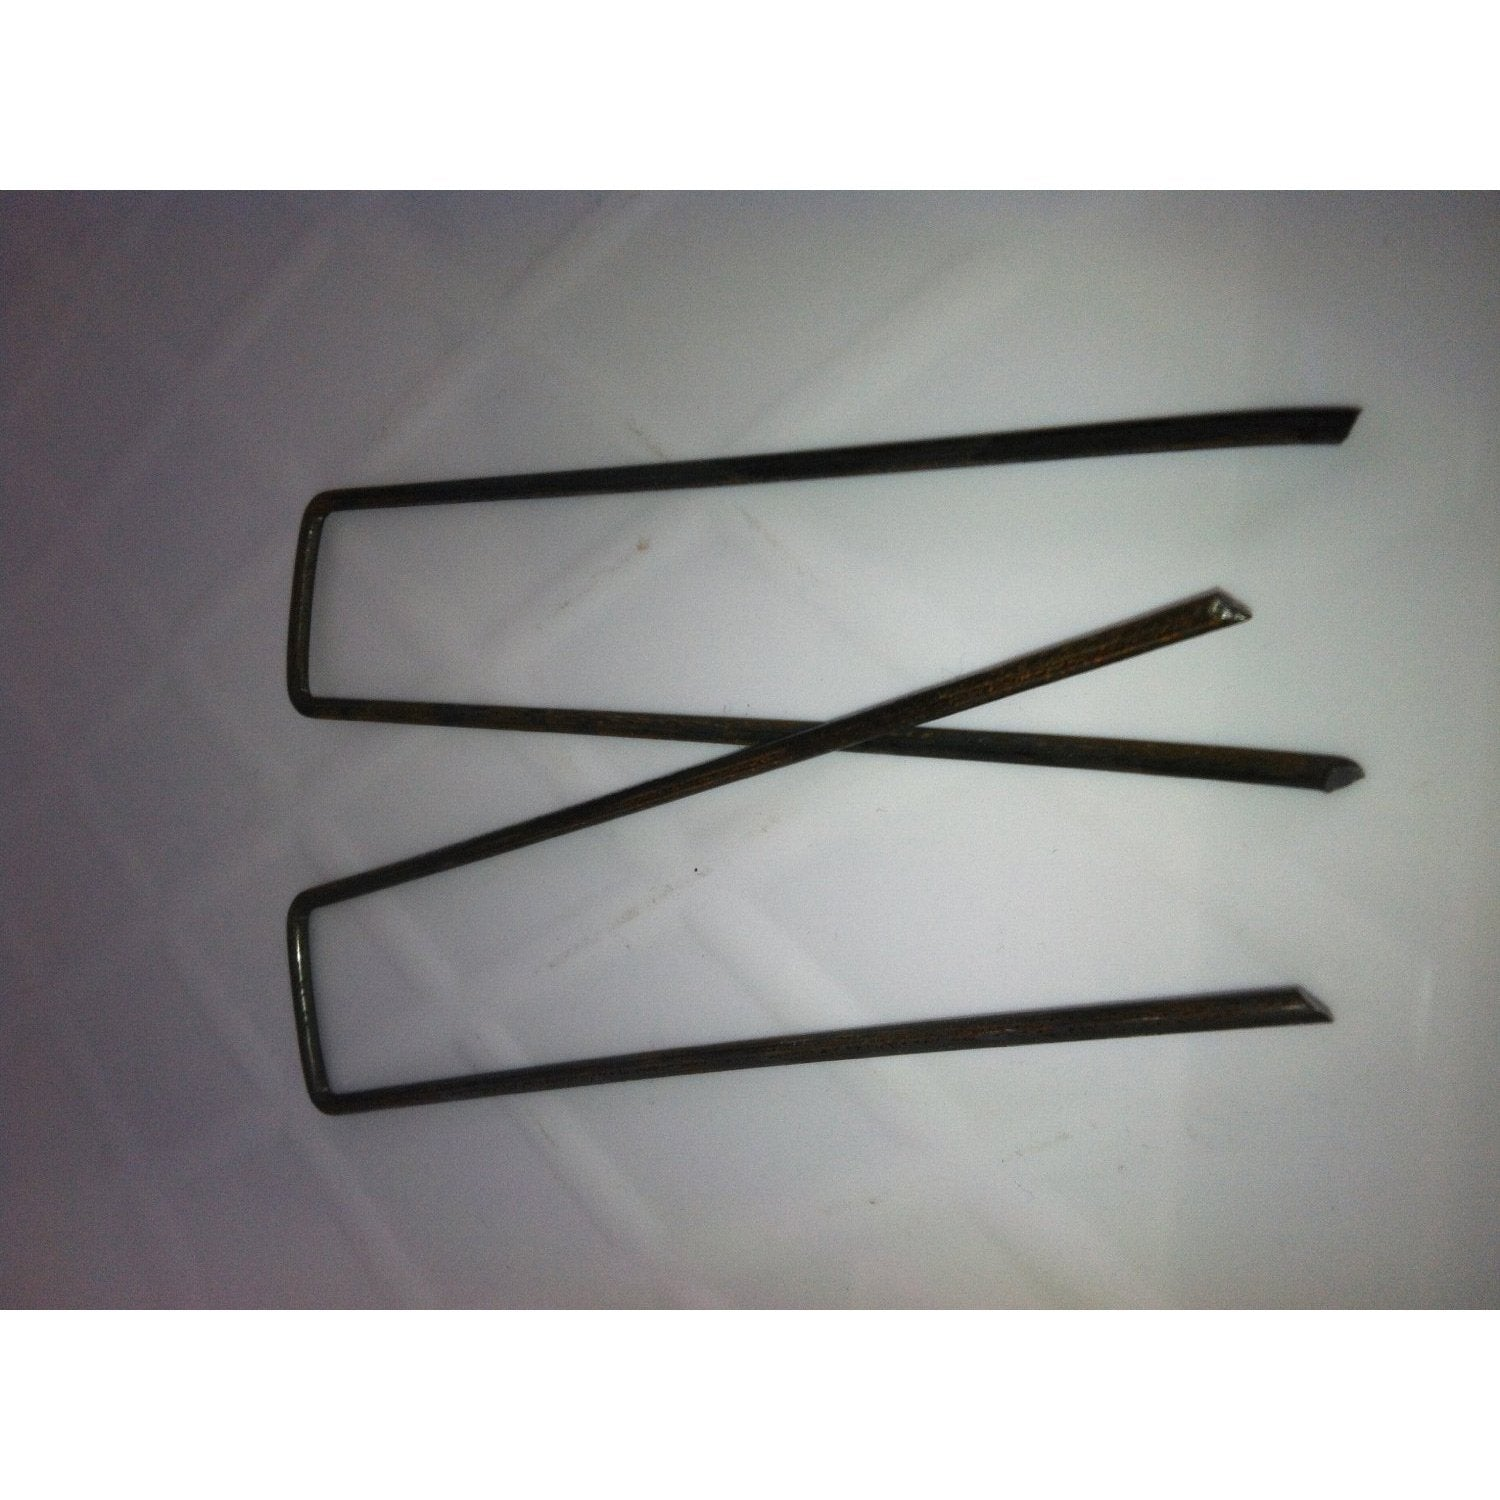 500 Pack of Anchor Staples Fabric Pins for Landscape Fabric